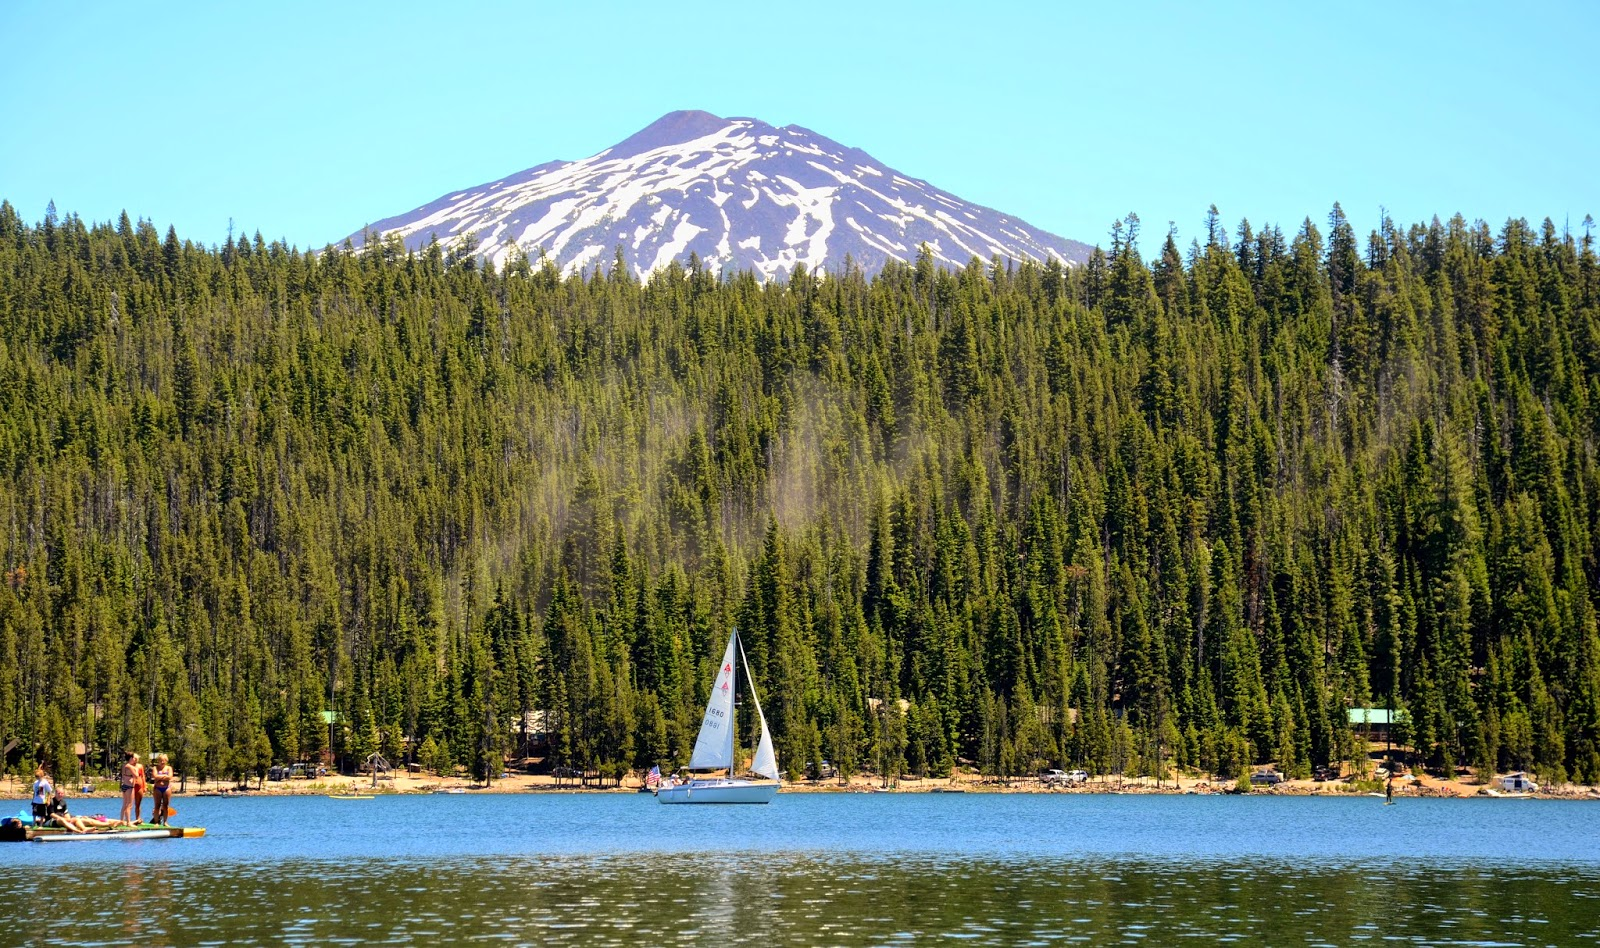 Deschutes National Forest, Oregon, USA